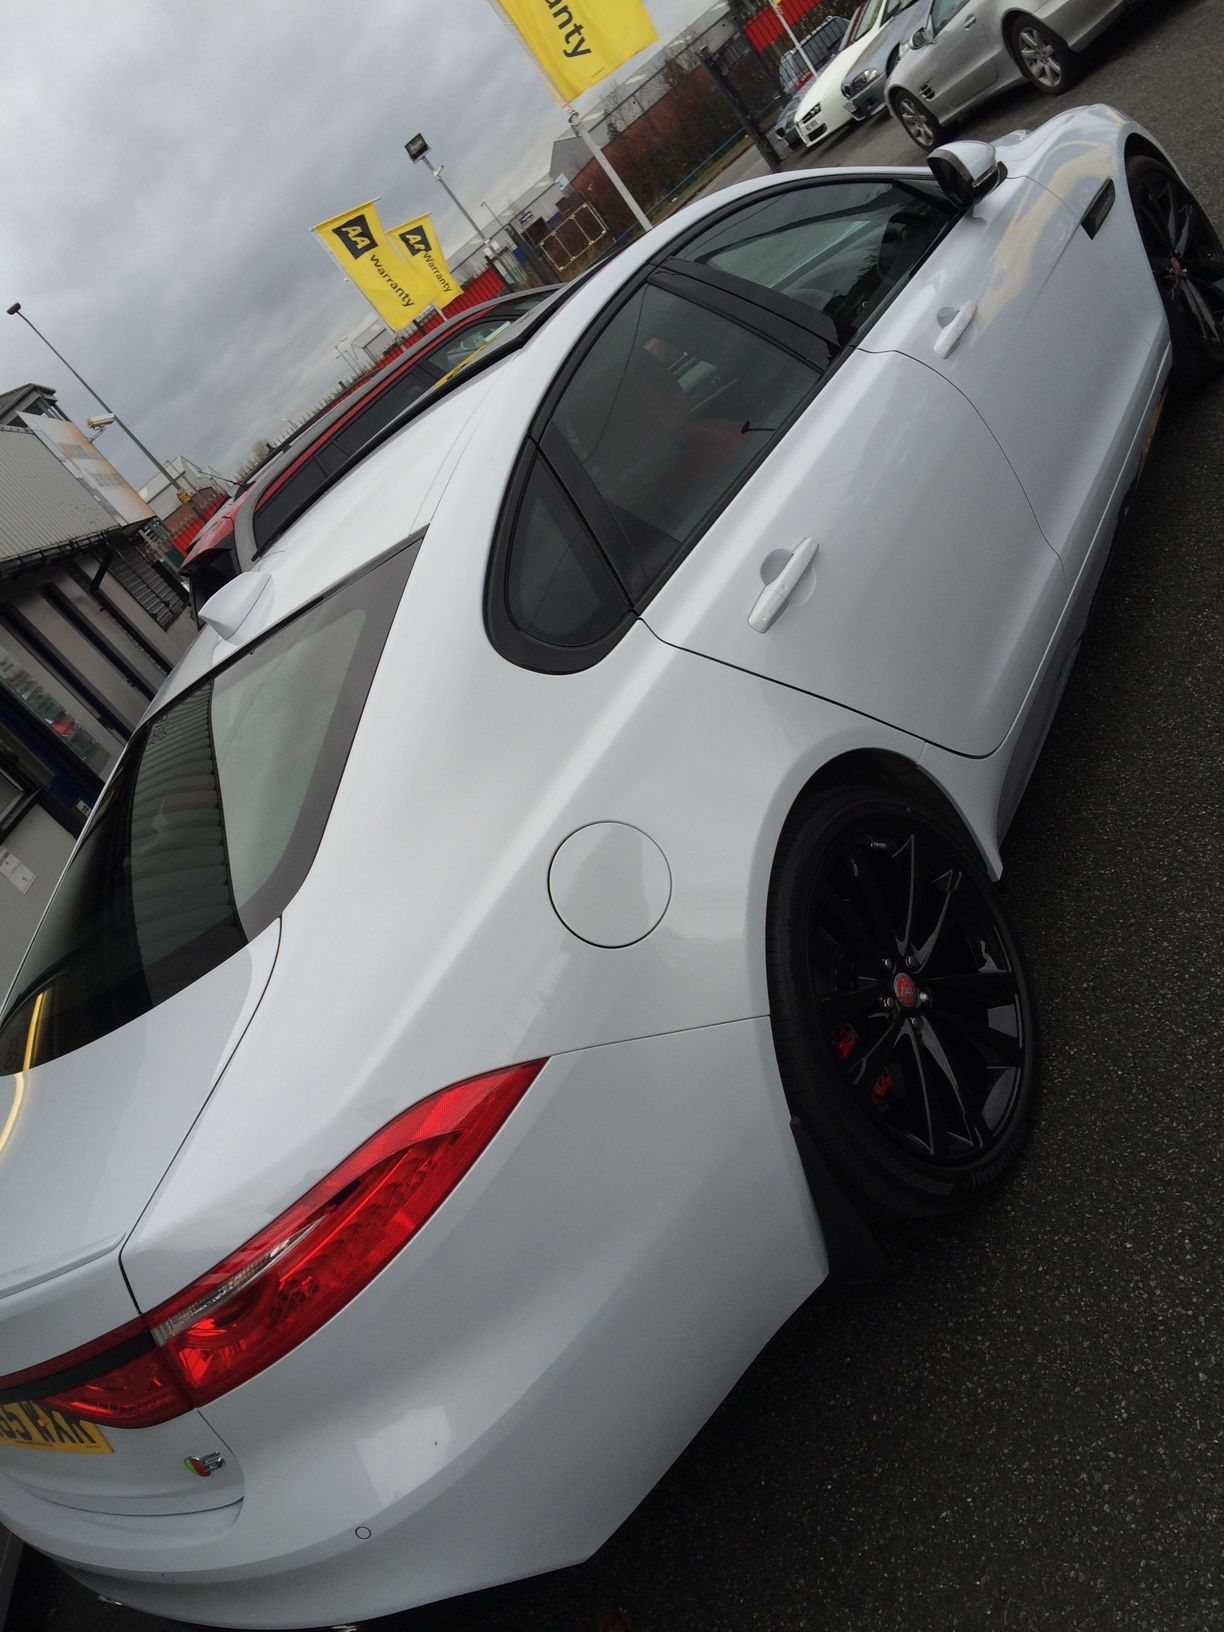 The Jaguar XF carleasing deal one of the many cars